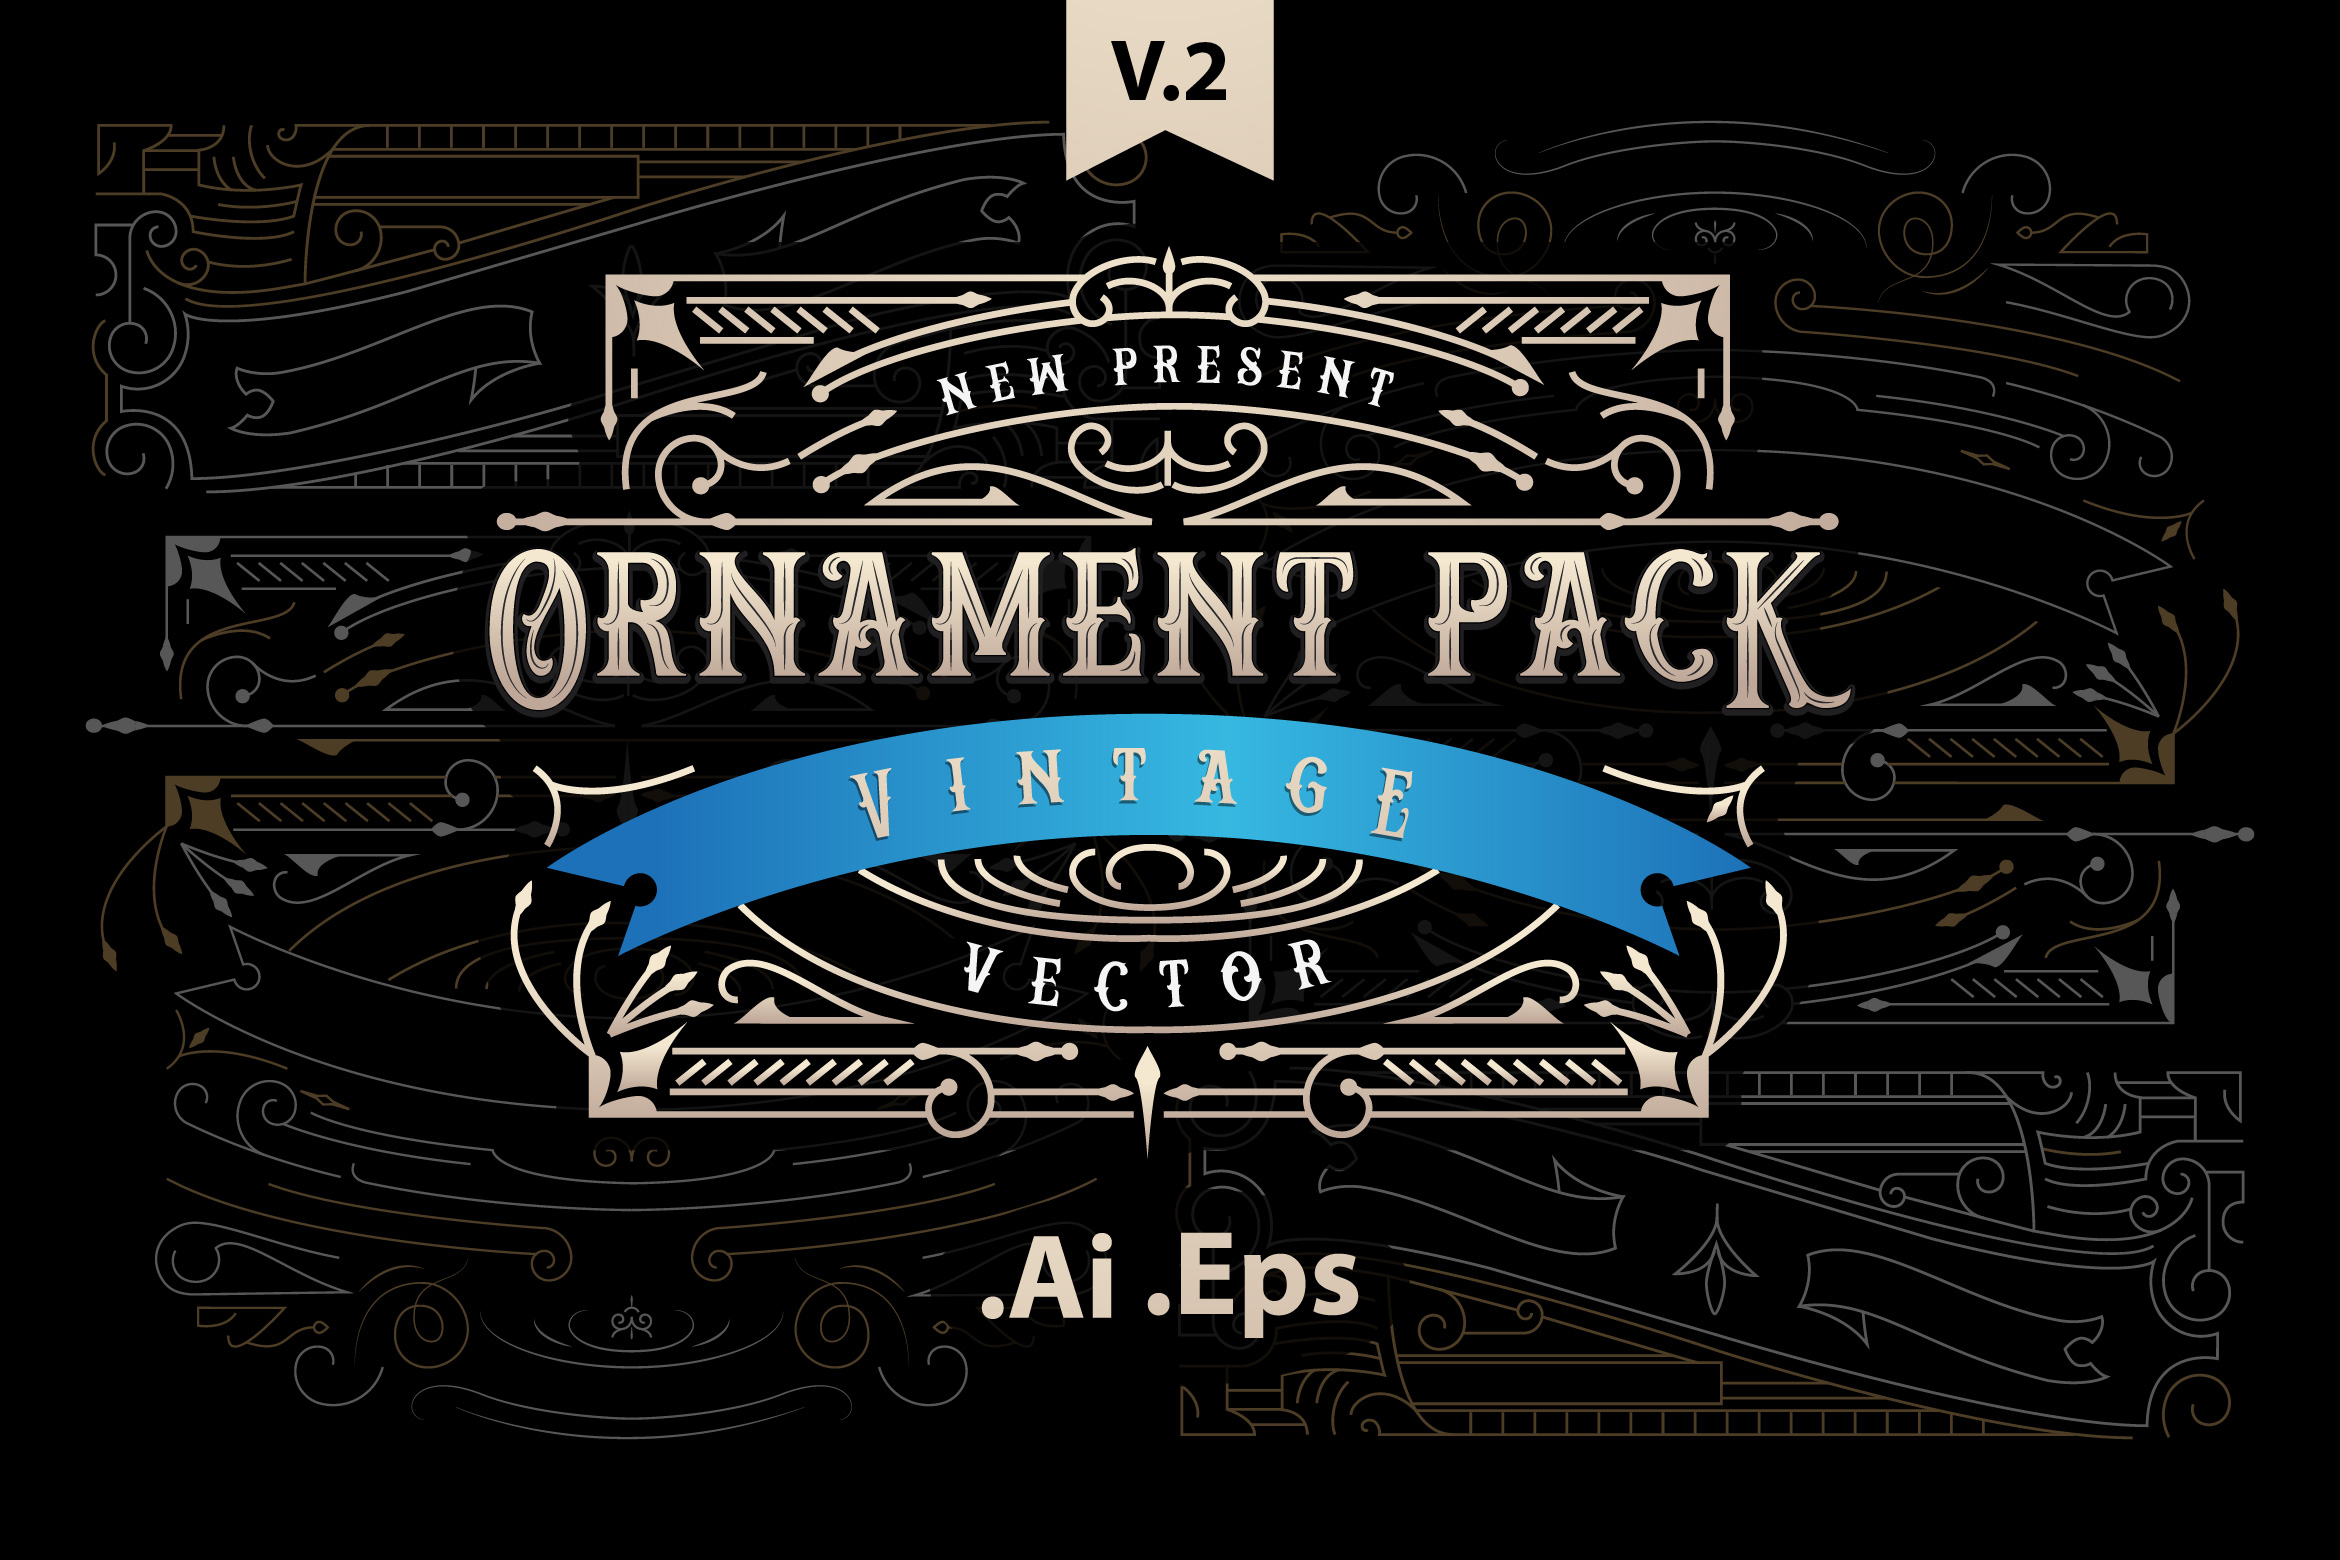 Ornament Pack Vintage 2 Graphic By storictype Image 1